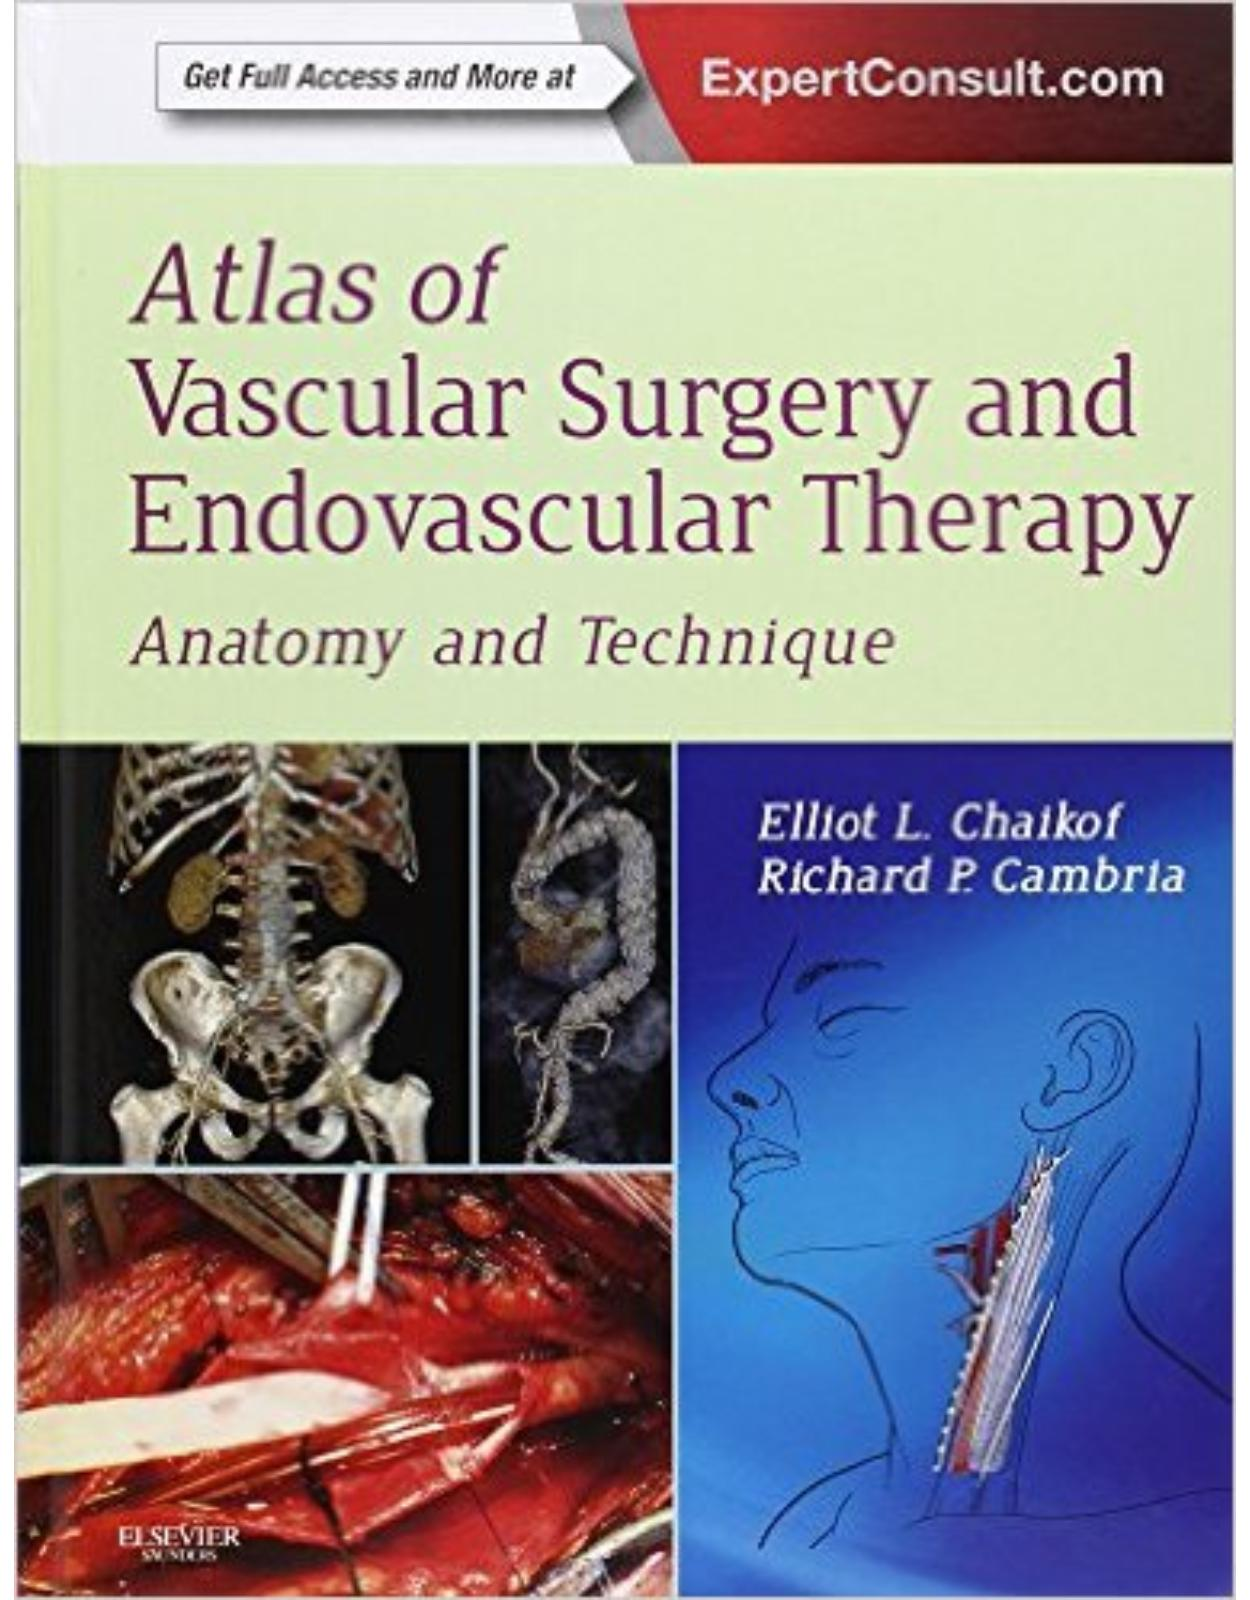 Atlas of Vascular Surgery and Endovascular Therapy: Anatomy and Technique